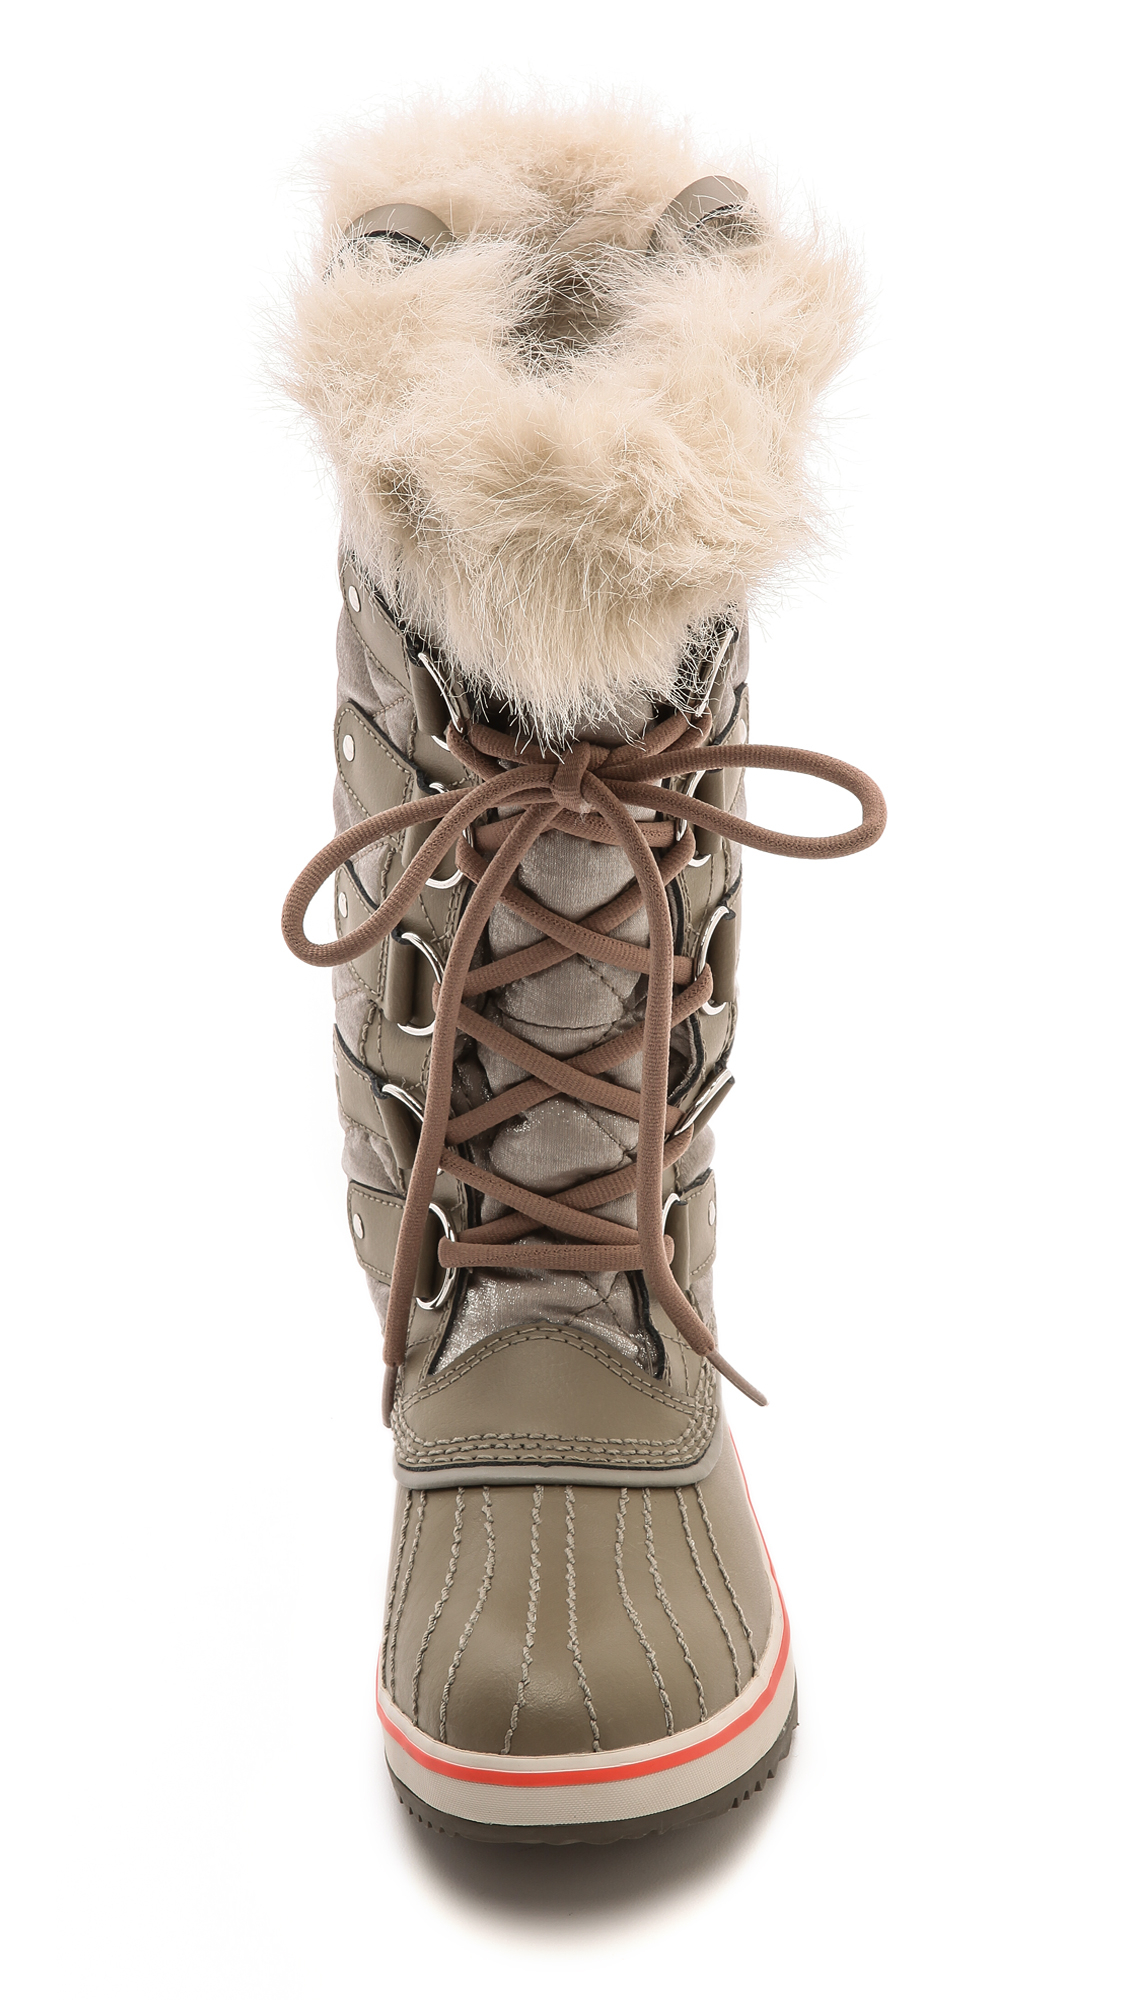 Lyst Sorel Tofino Faux Fur Lined Boots Kettle Courage